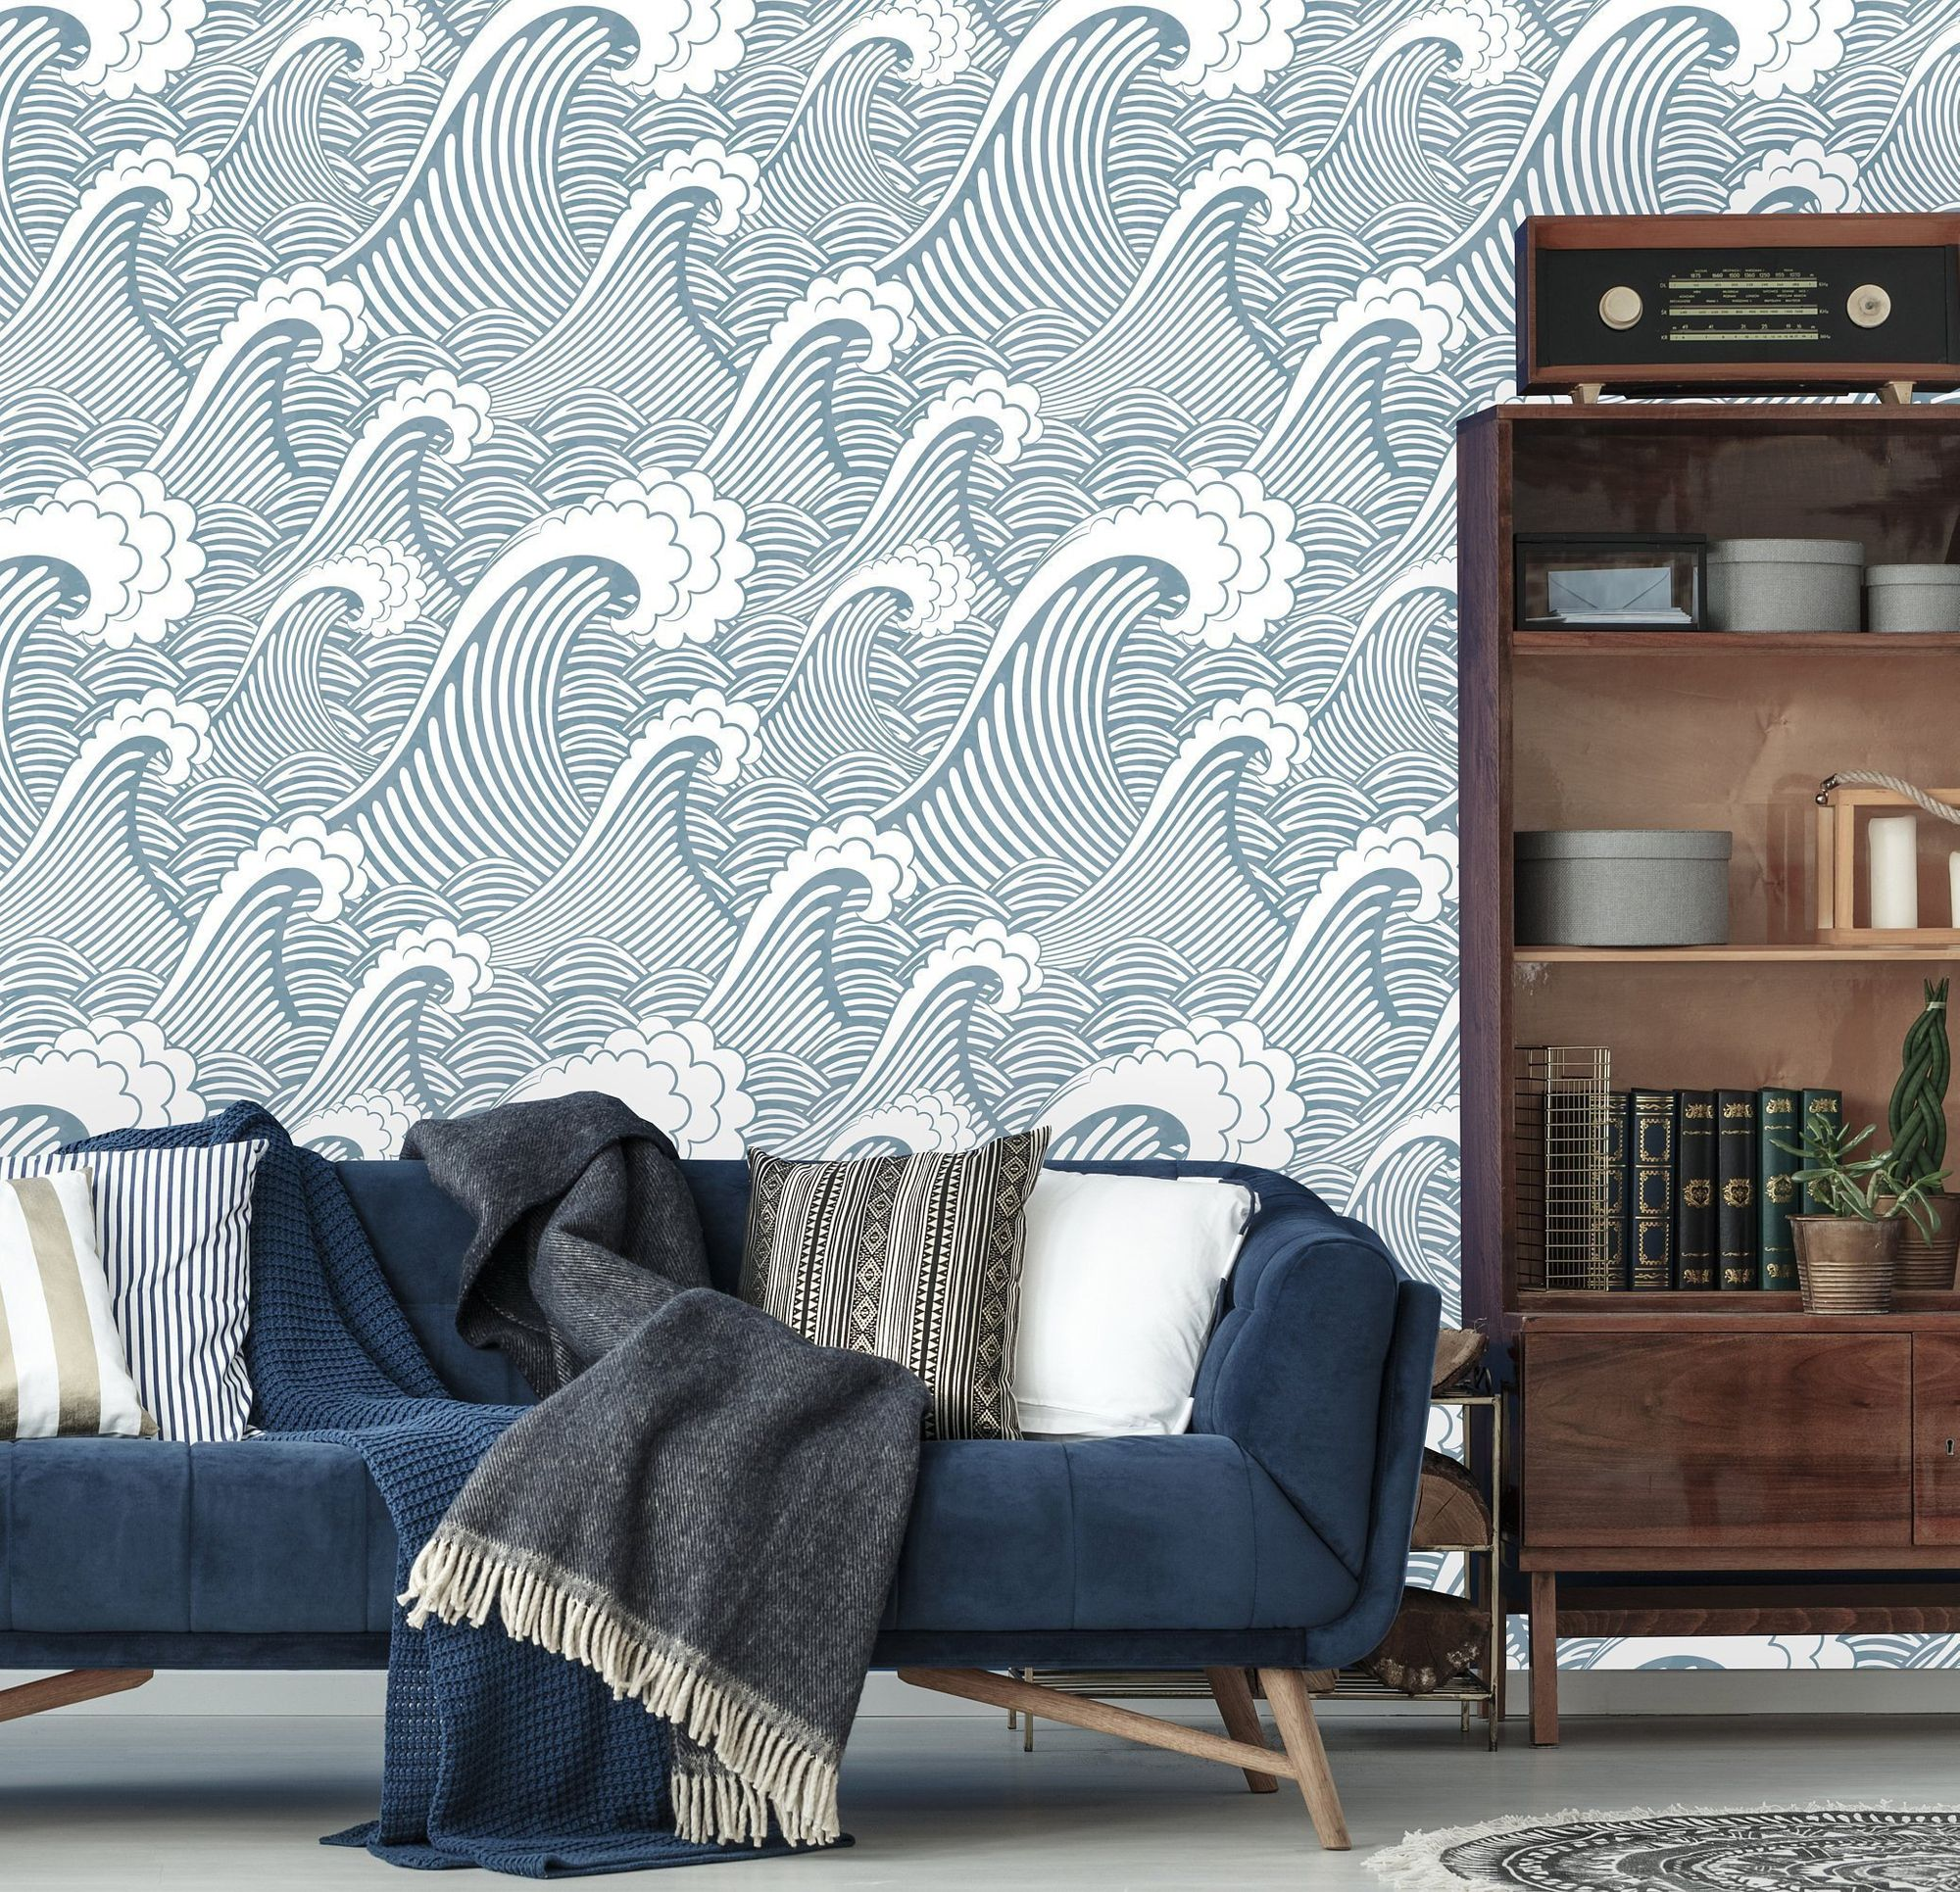 Removable Wallpaper Peel and Stick Great Wave Wallpaper